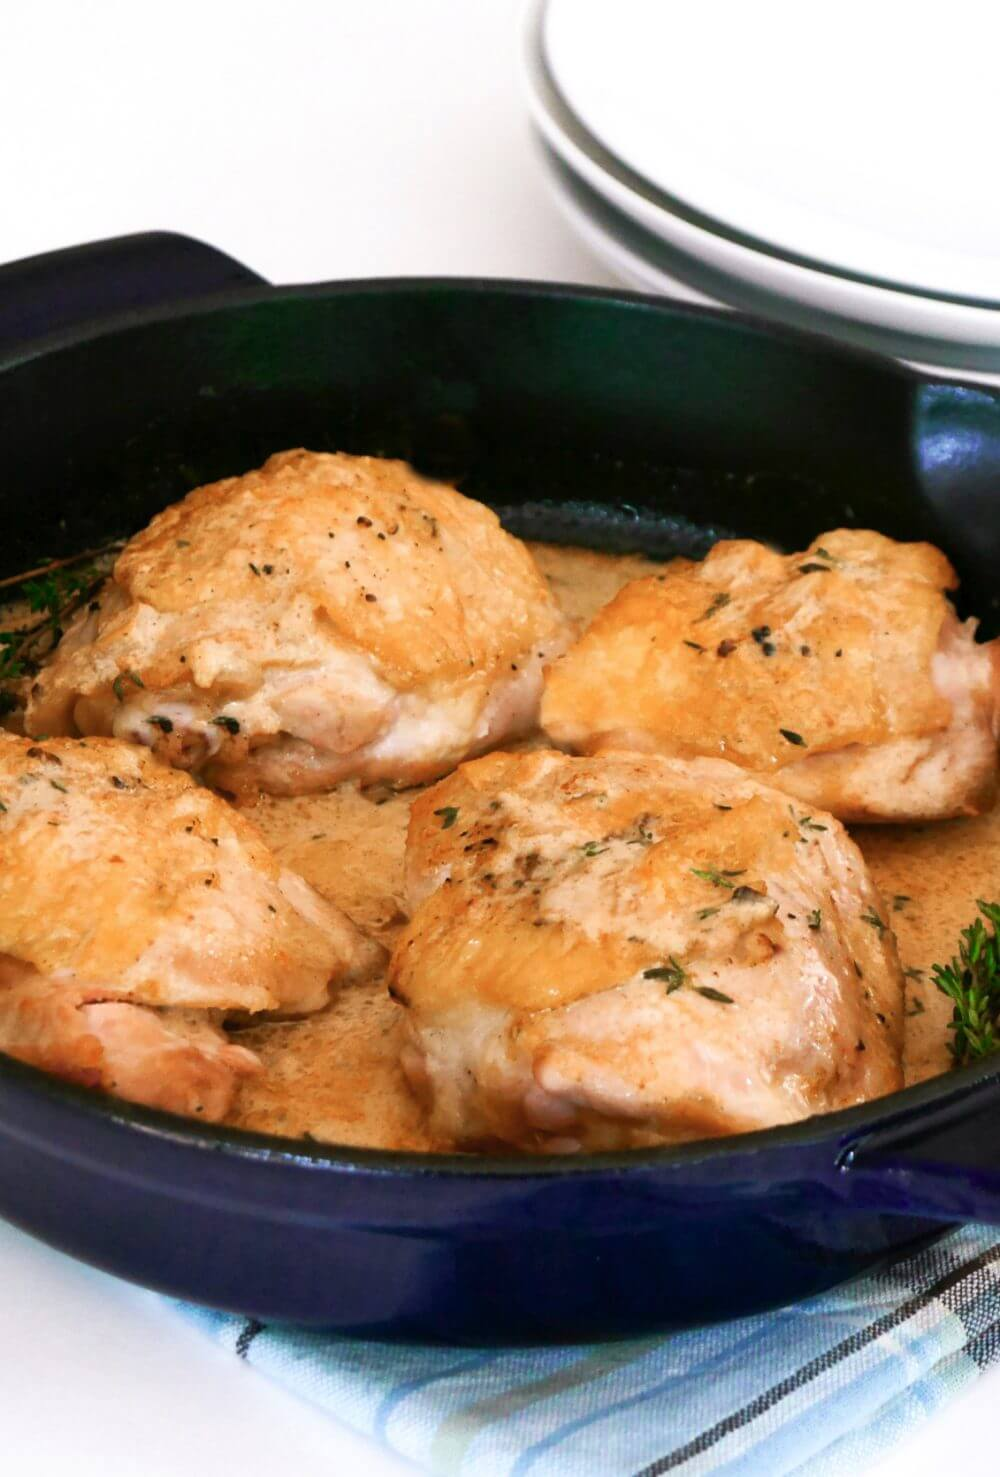 Perfect for busy weeknights, these keto dijon chicken thighs are made in one pan!